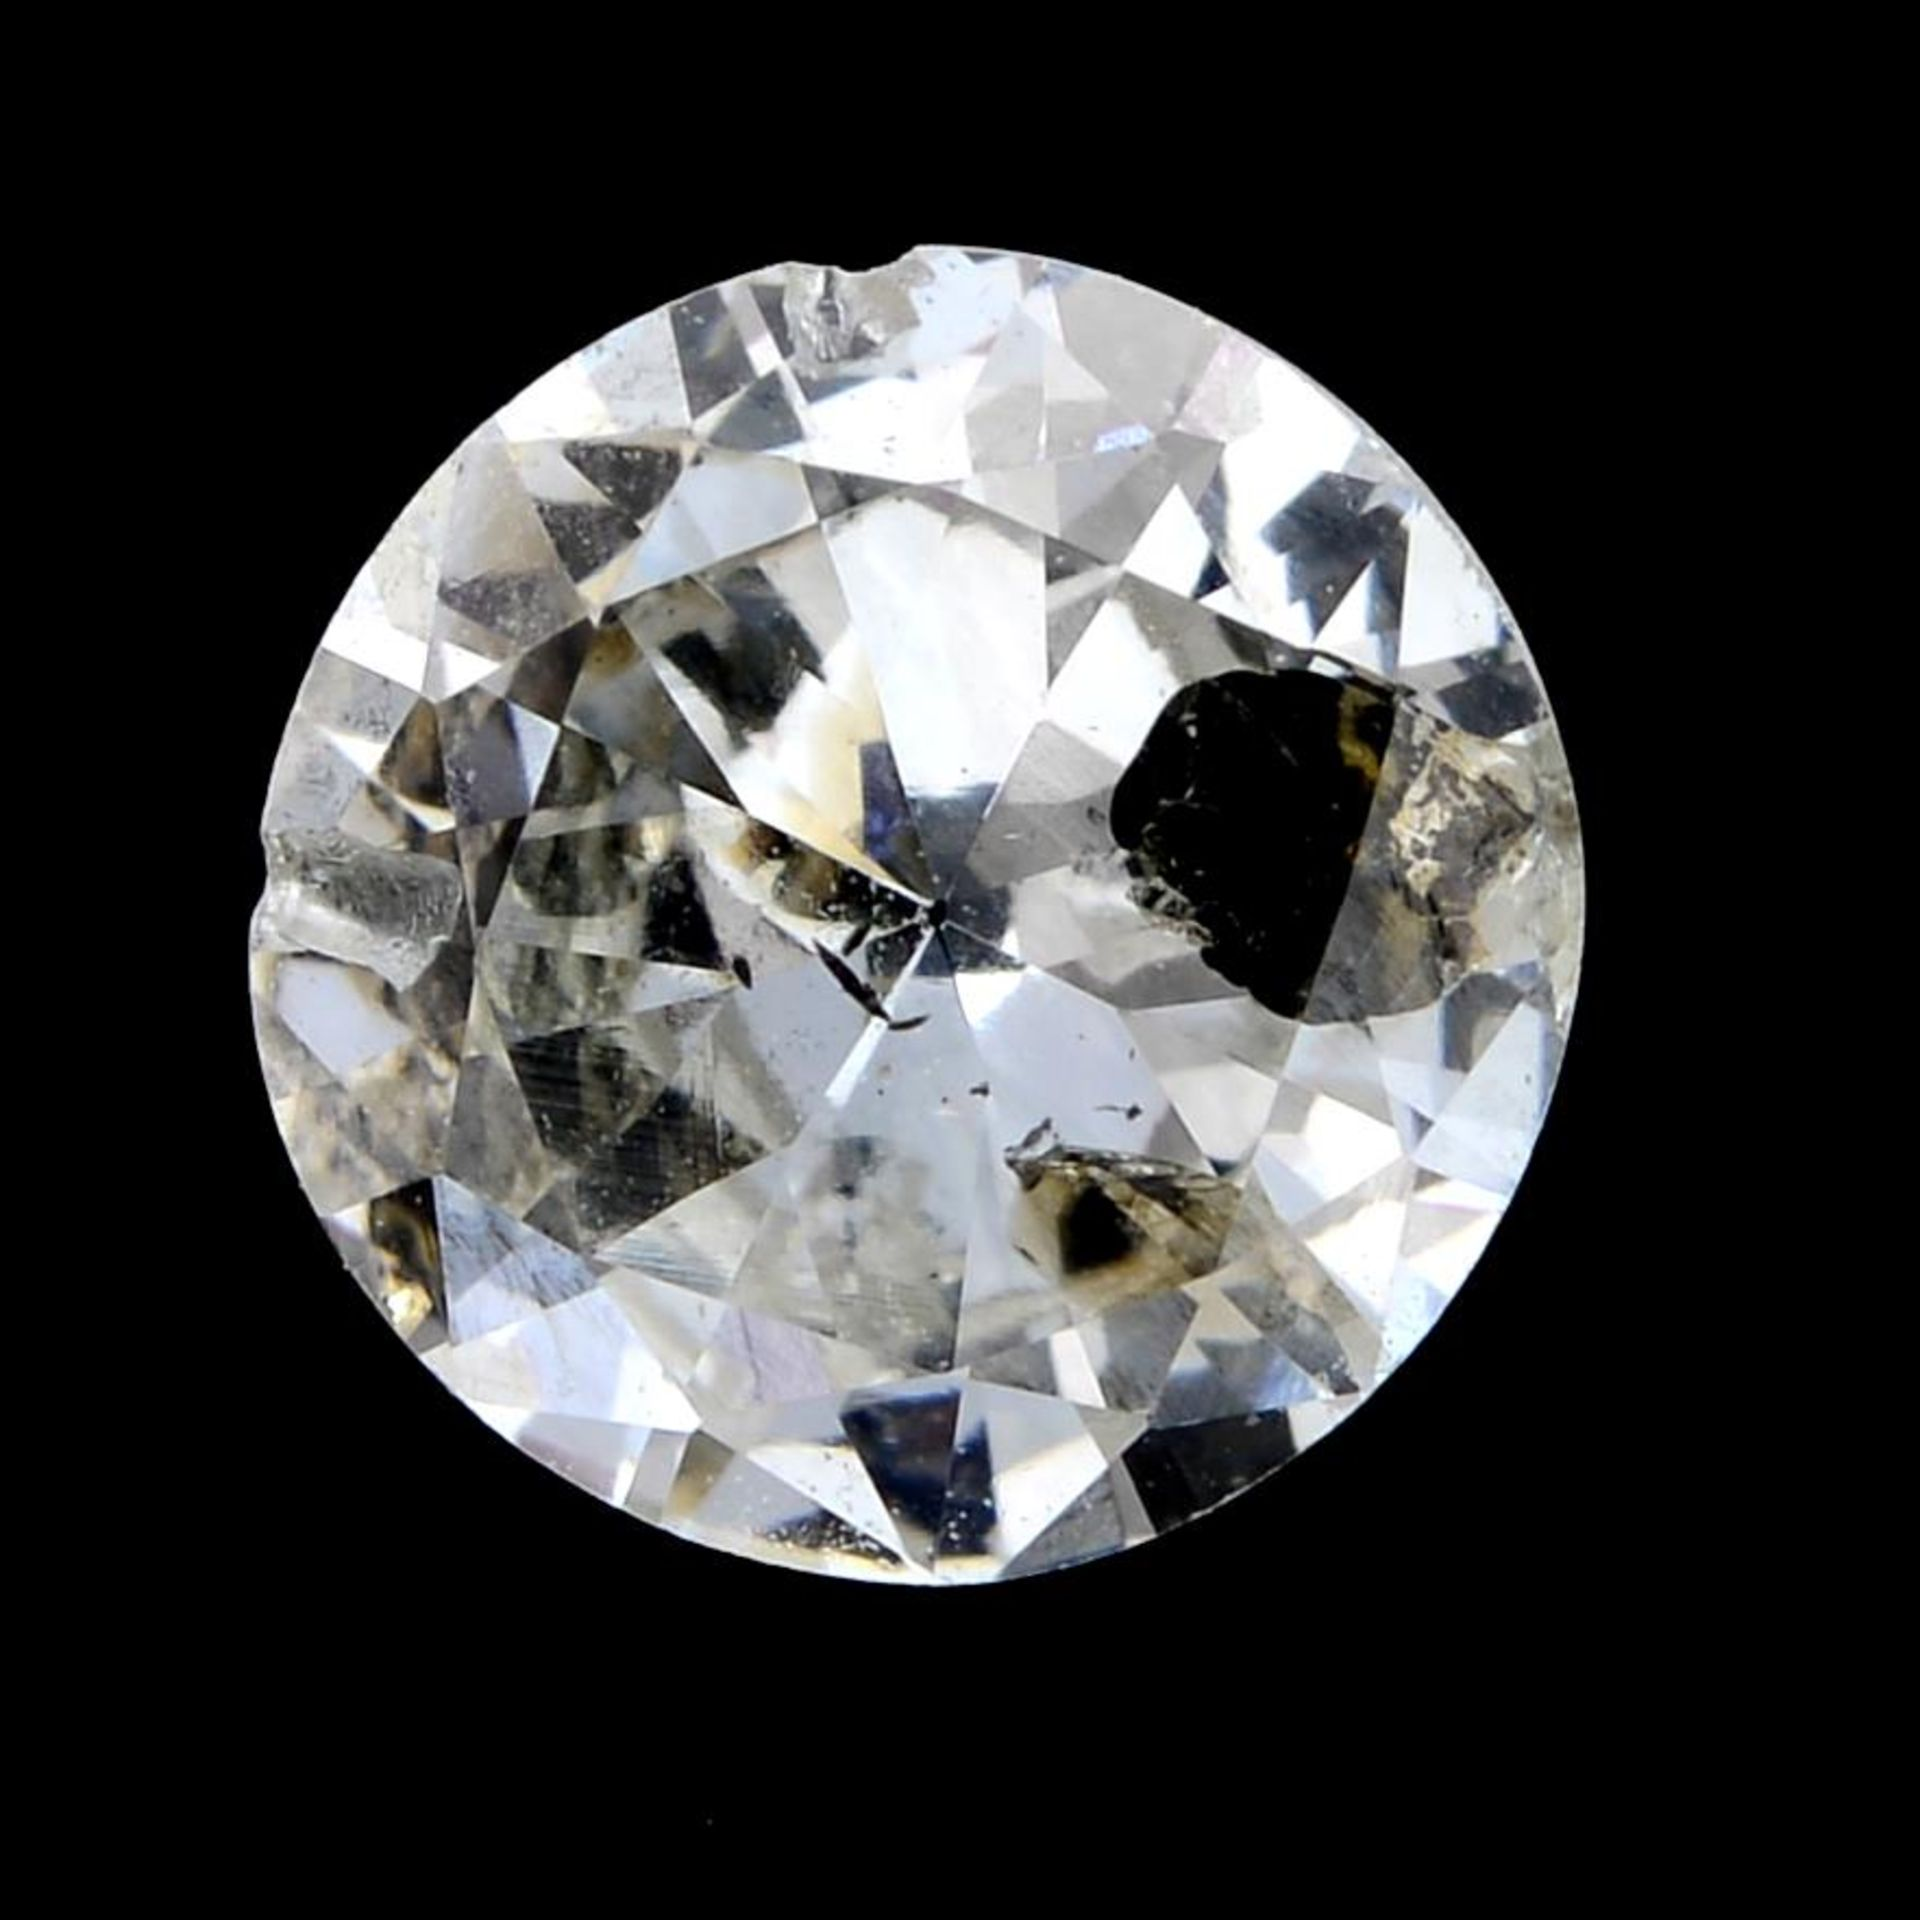 A brilliant cut diamond weighing 1.02cts.